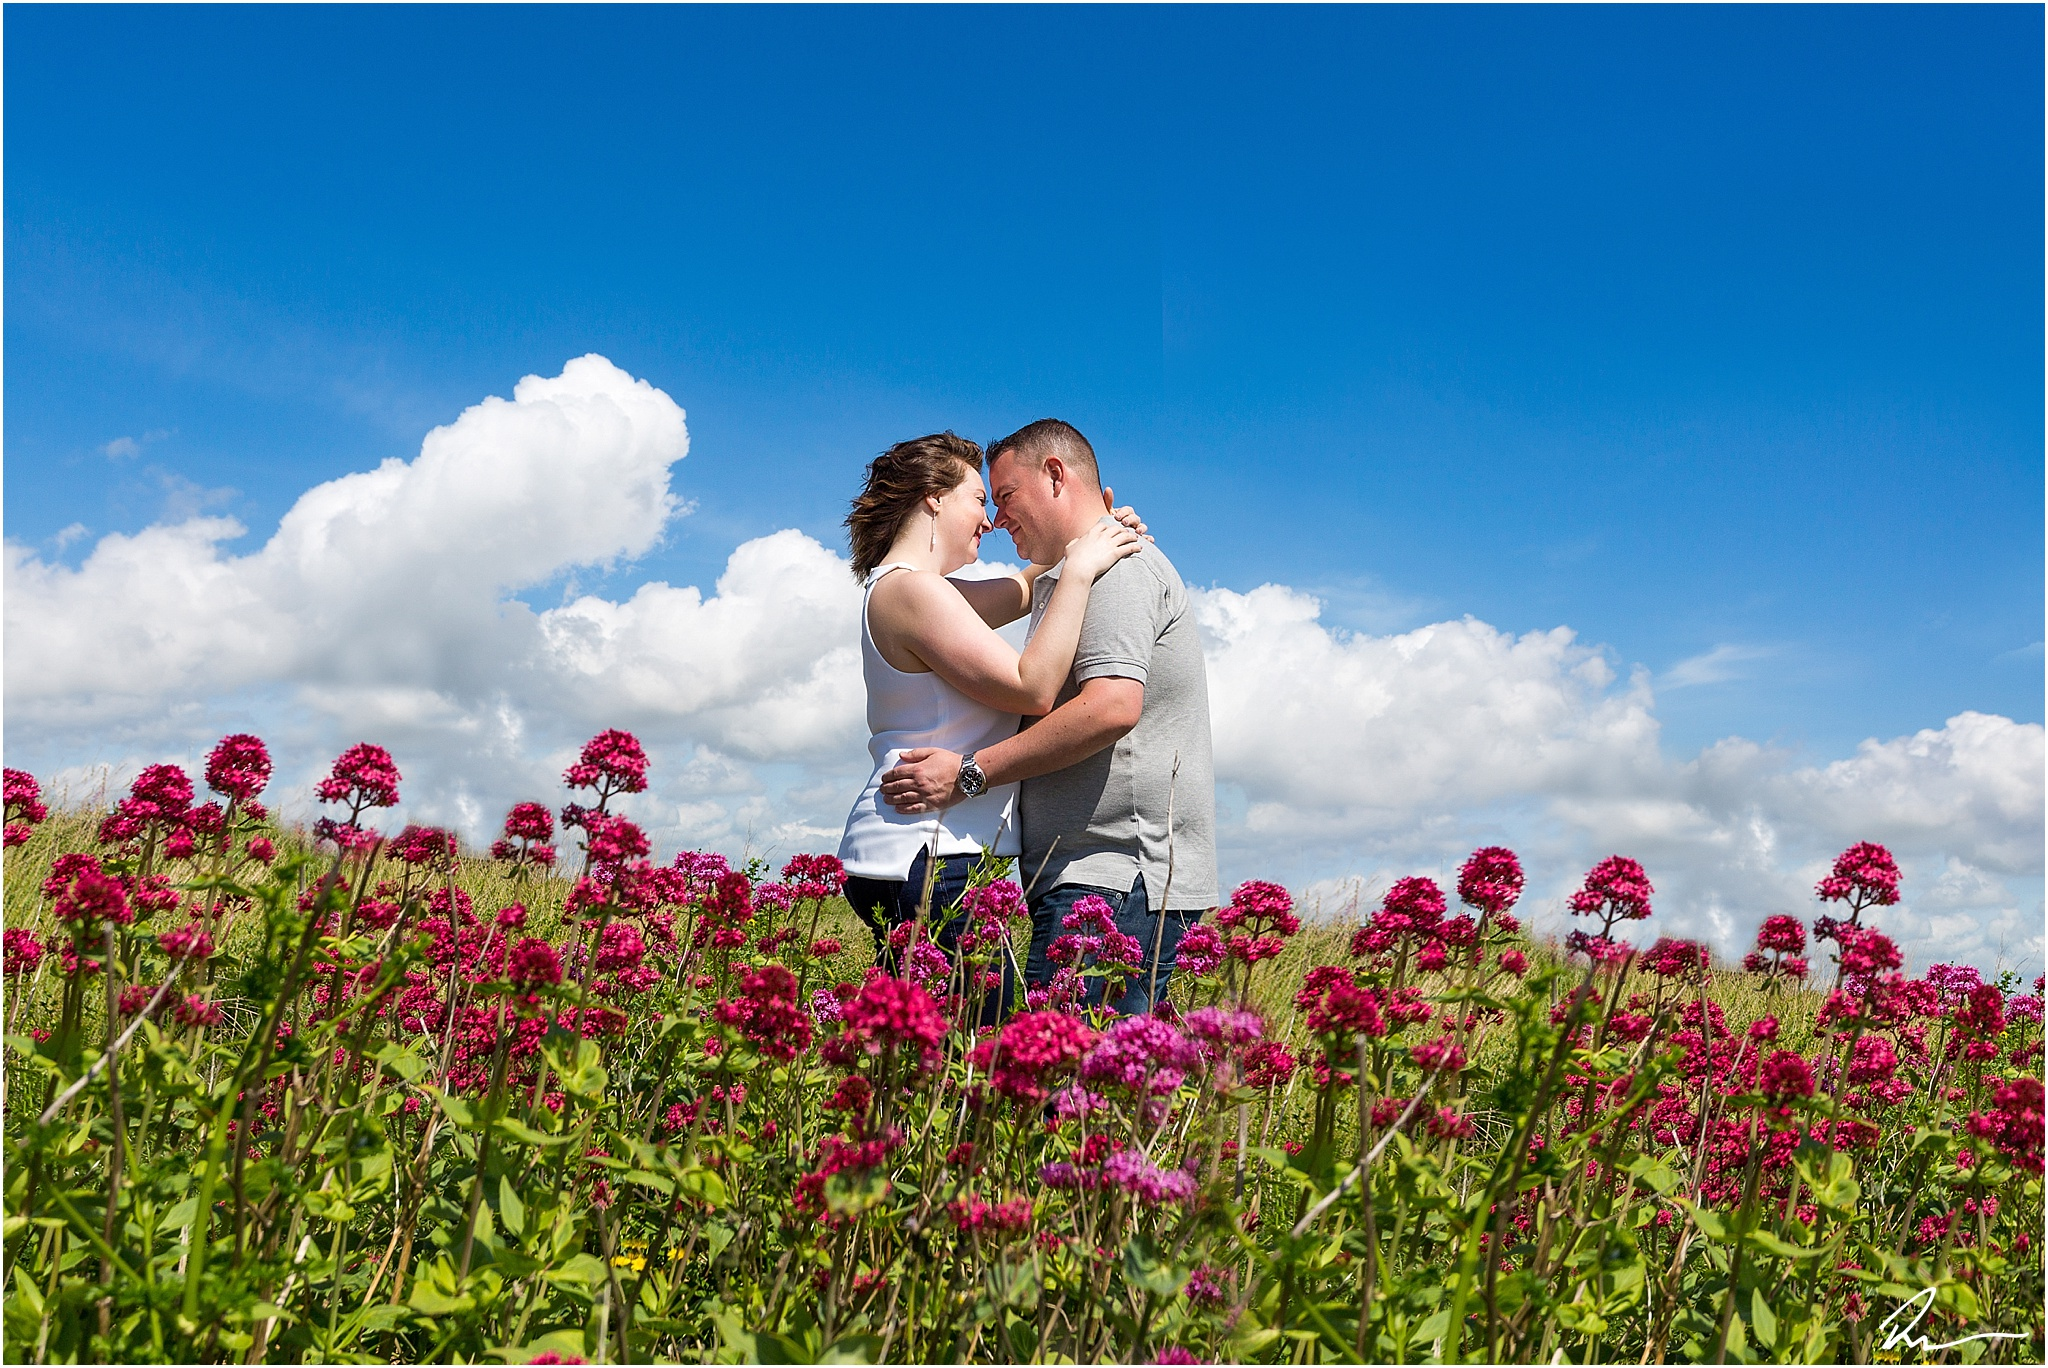 old-felixstowe-engagement-ross-dean-photography